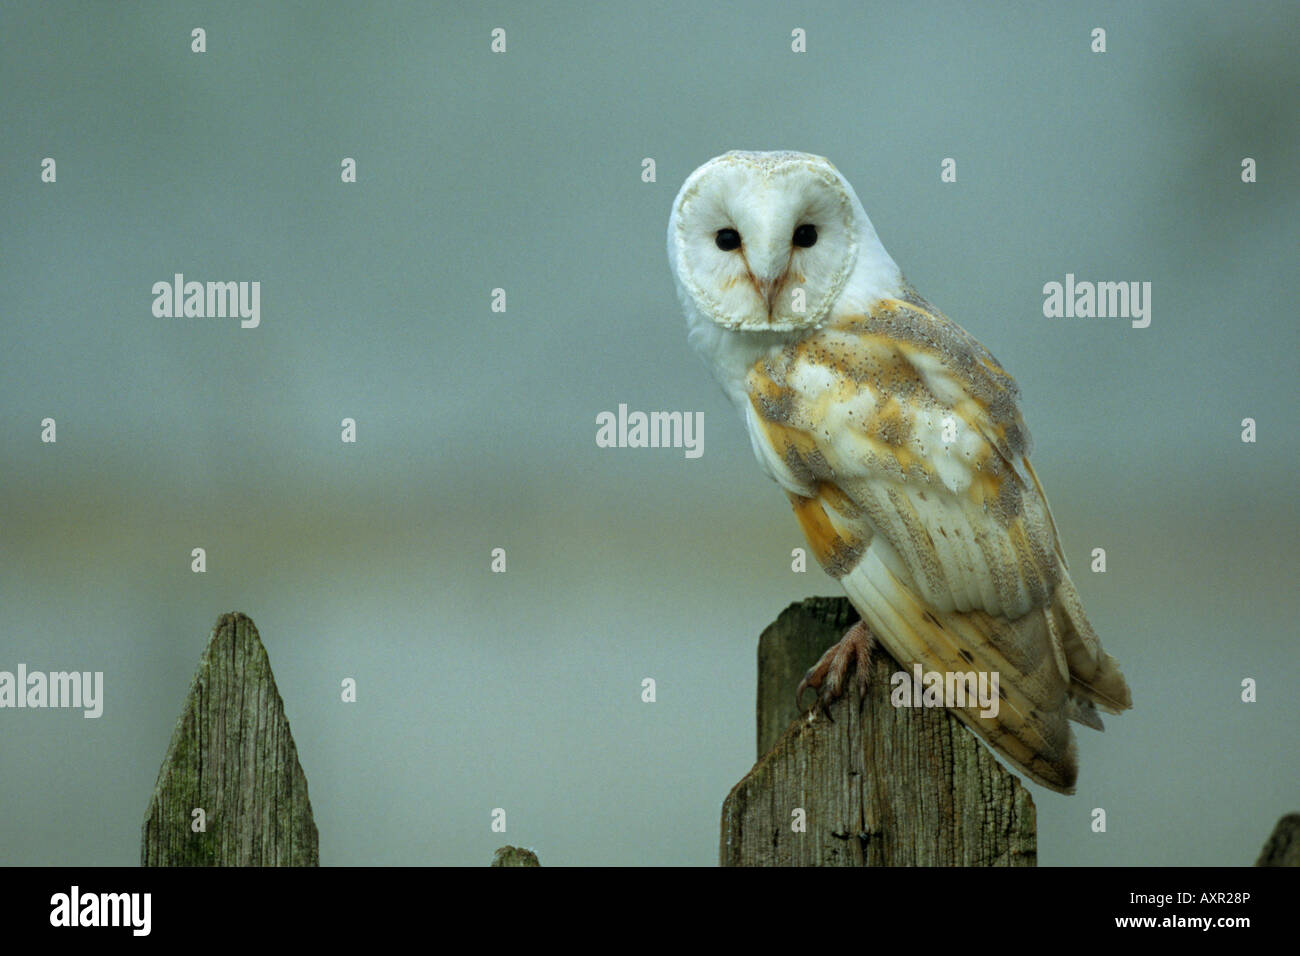 Barn Owl Tyto alba perched on an old fence post in the mist making eye contact - Stock Image